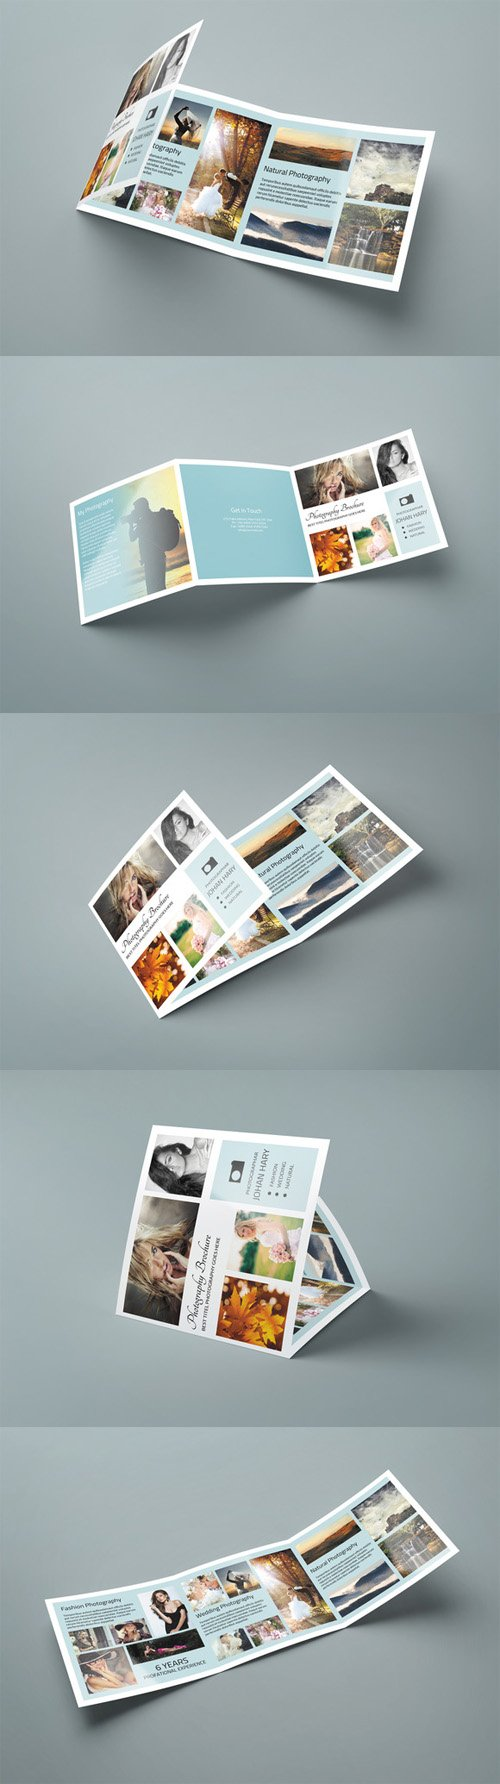 CM - Trifold Photography Brochure 396014